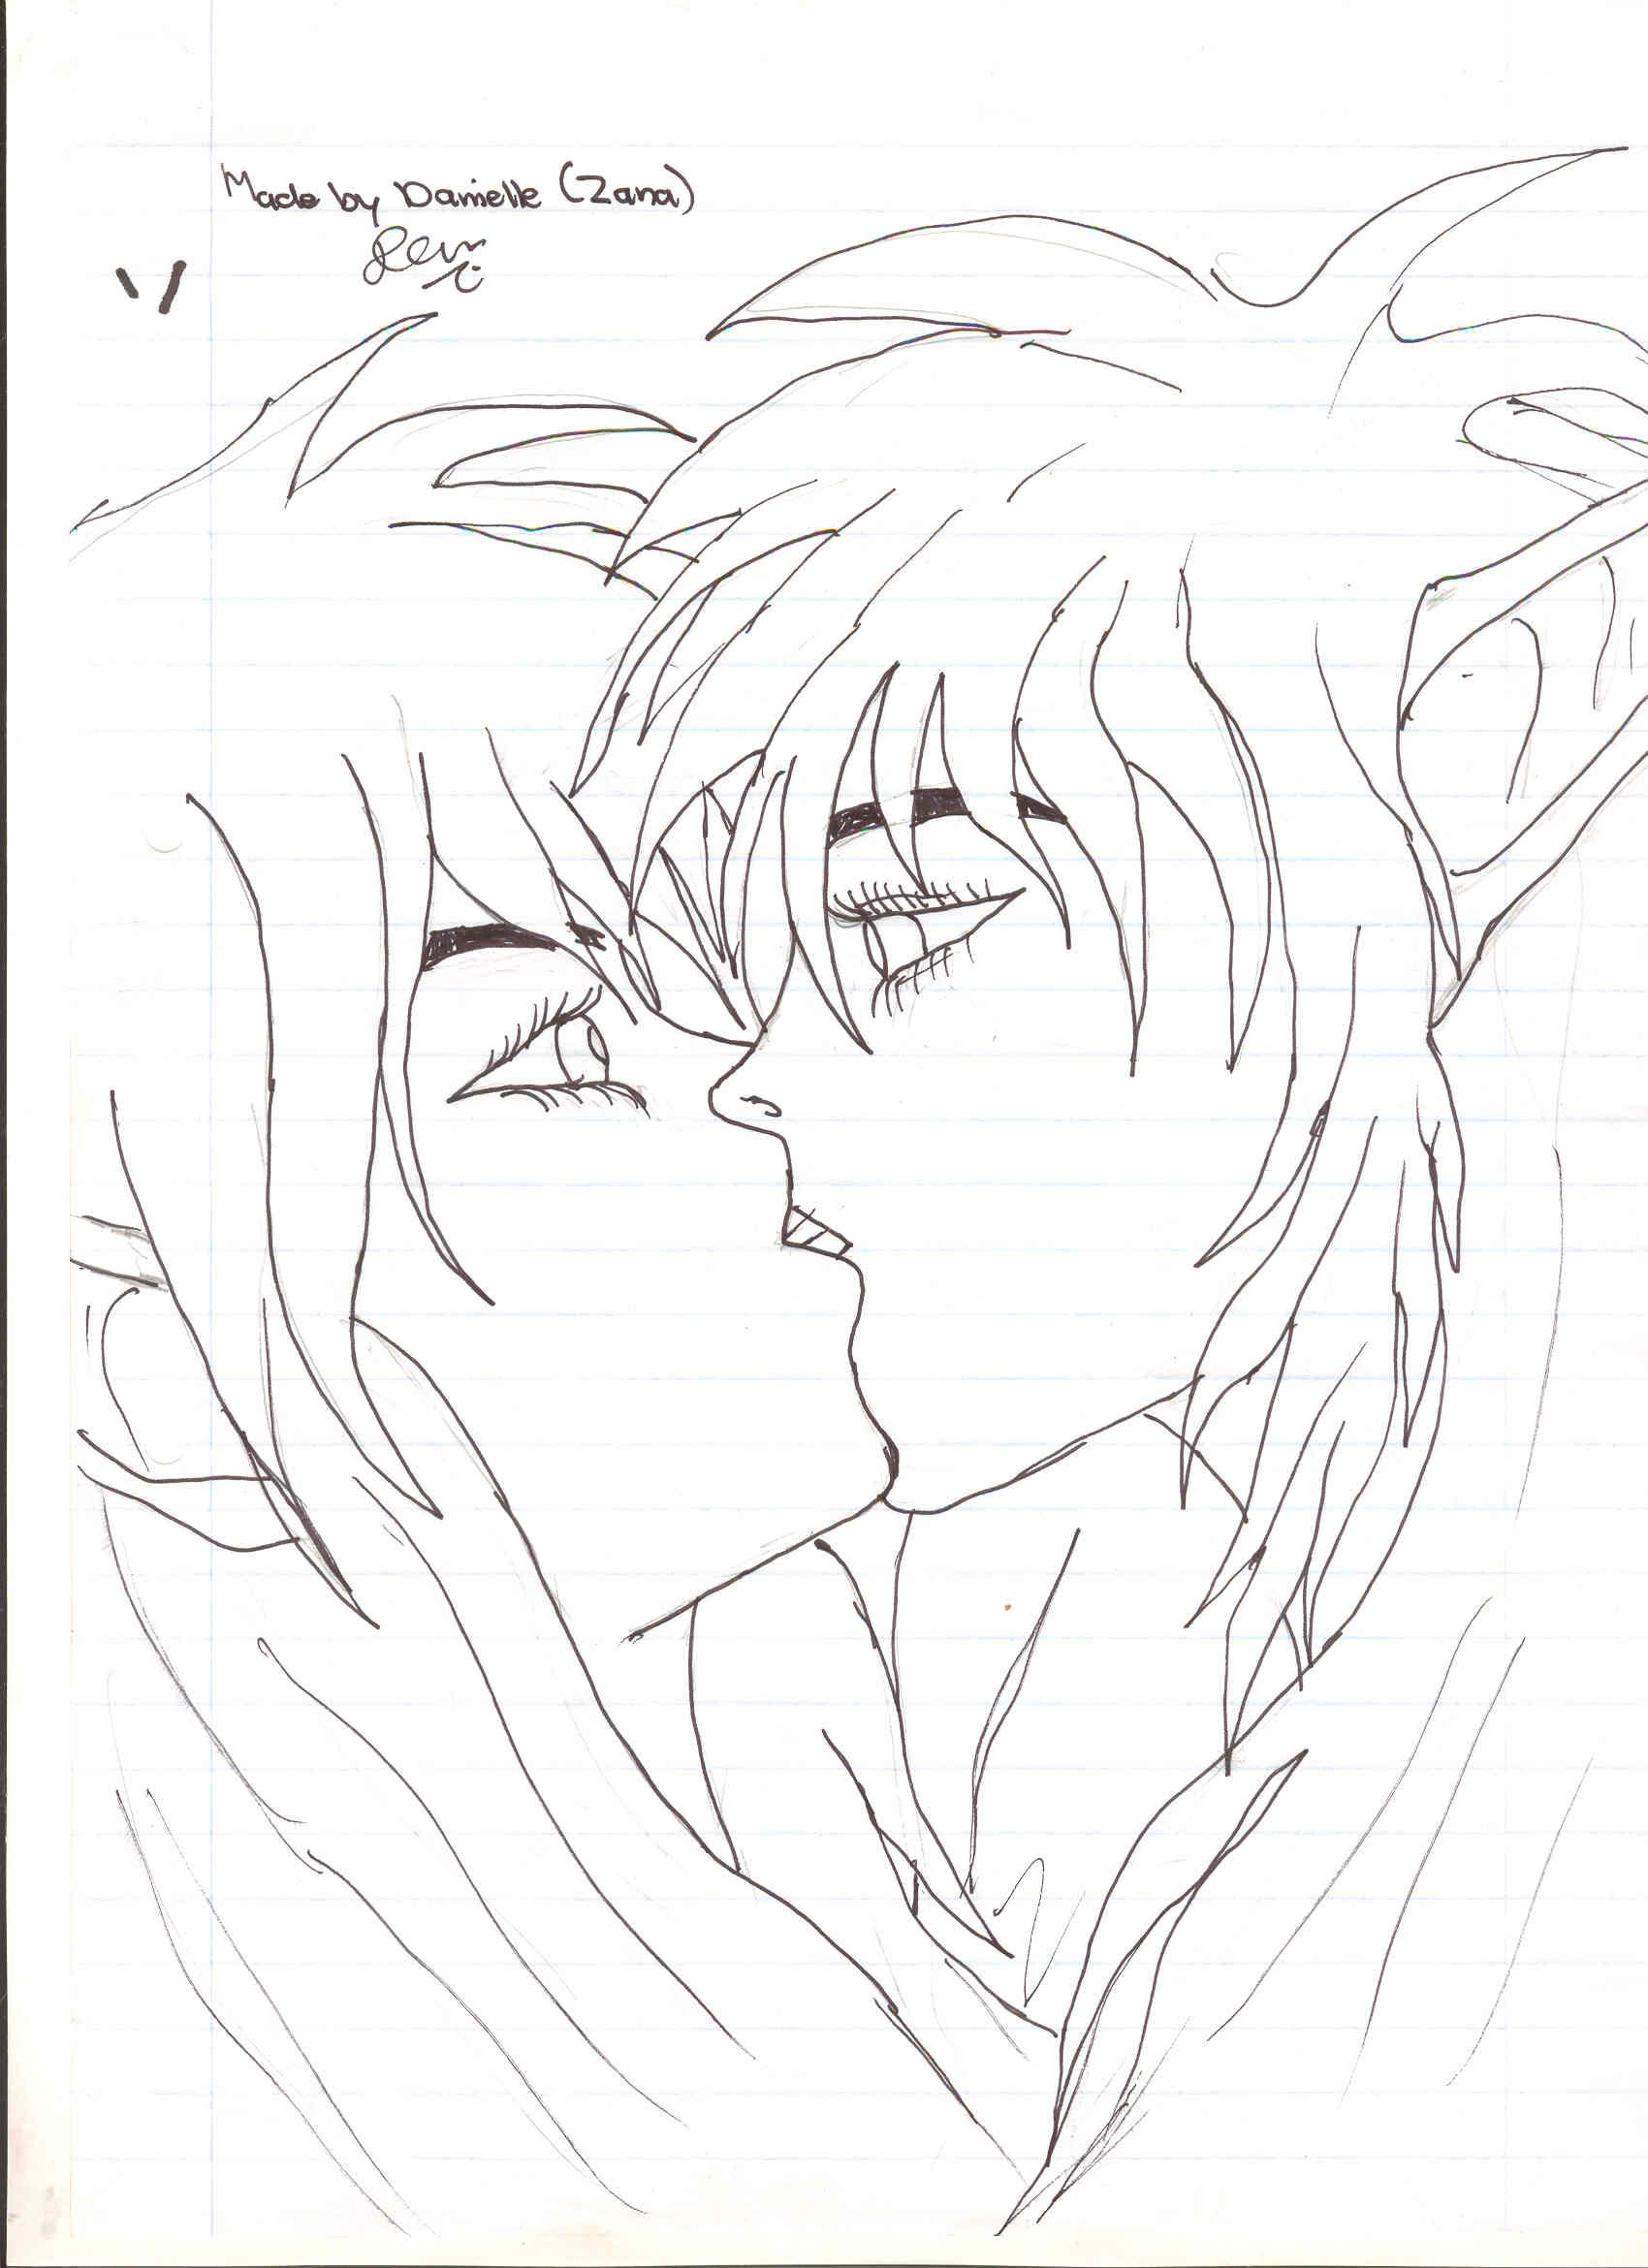 Couple kissing drawing drawing kissing easy drawing o